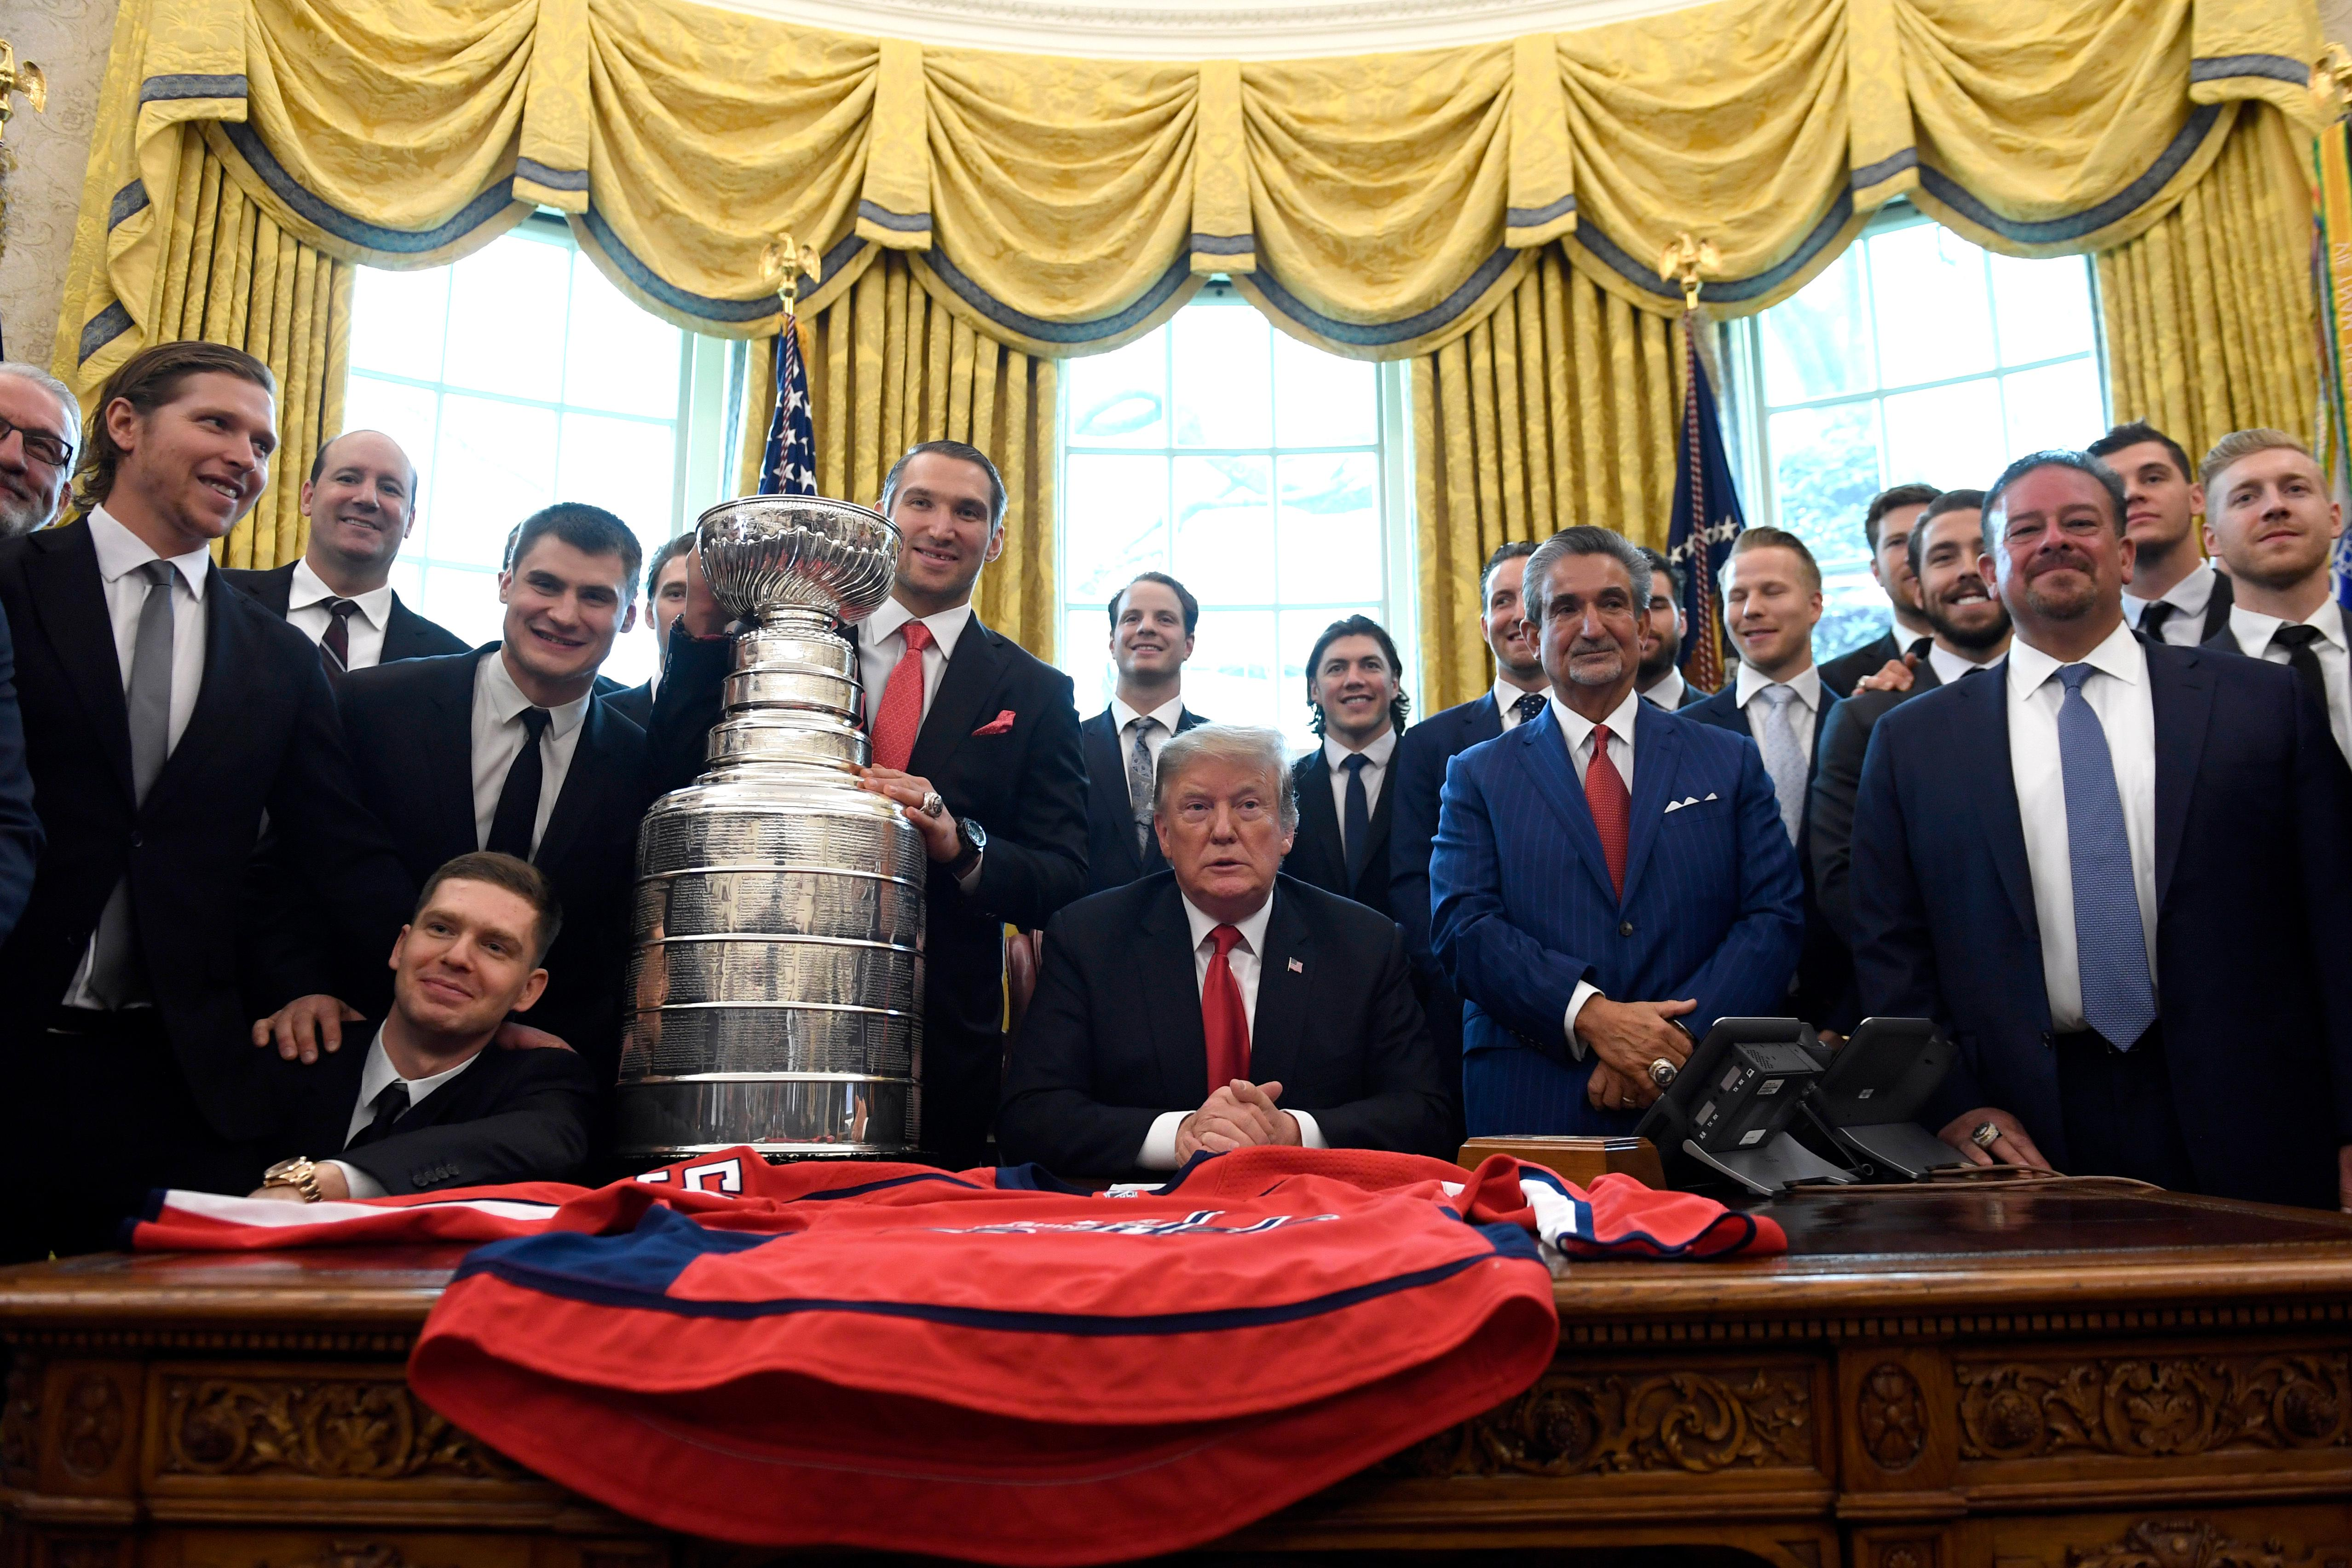 President Donald Trump, center, poses for a photo as he hosts the 2018 Stanley Cup Champion Washington Capitals hockey team in the Oval Office of the White House in Washington, Monday, March 25, 2019. (AP Photo/Susan Walsh)